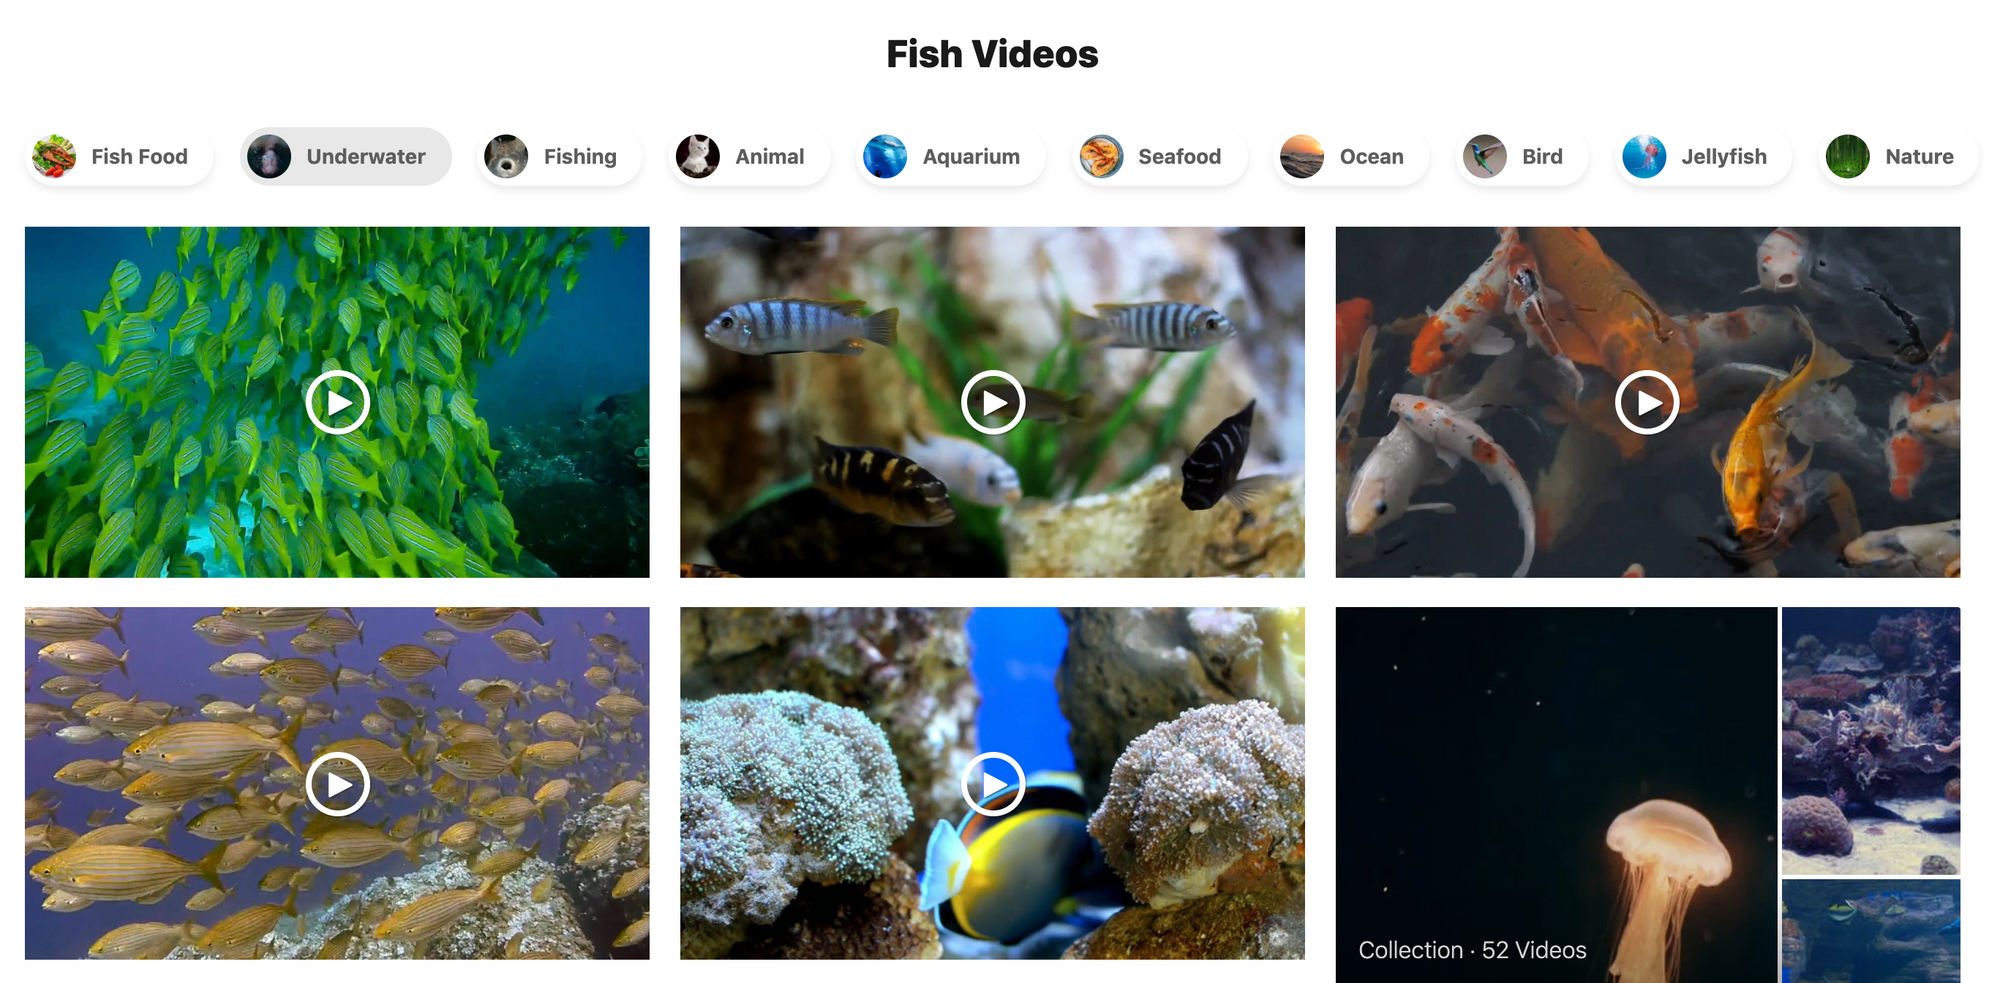 A screenshot with several videos of fish found in Pexels.